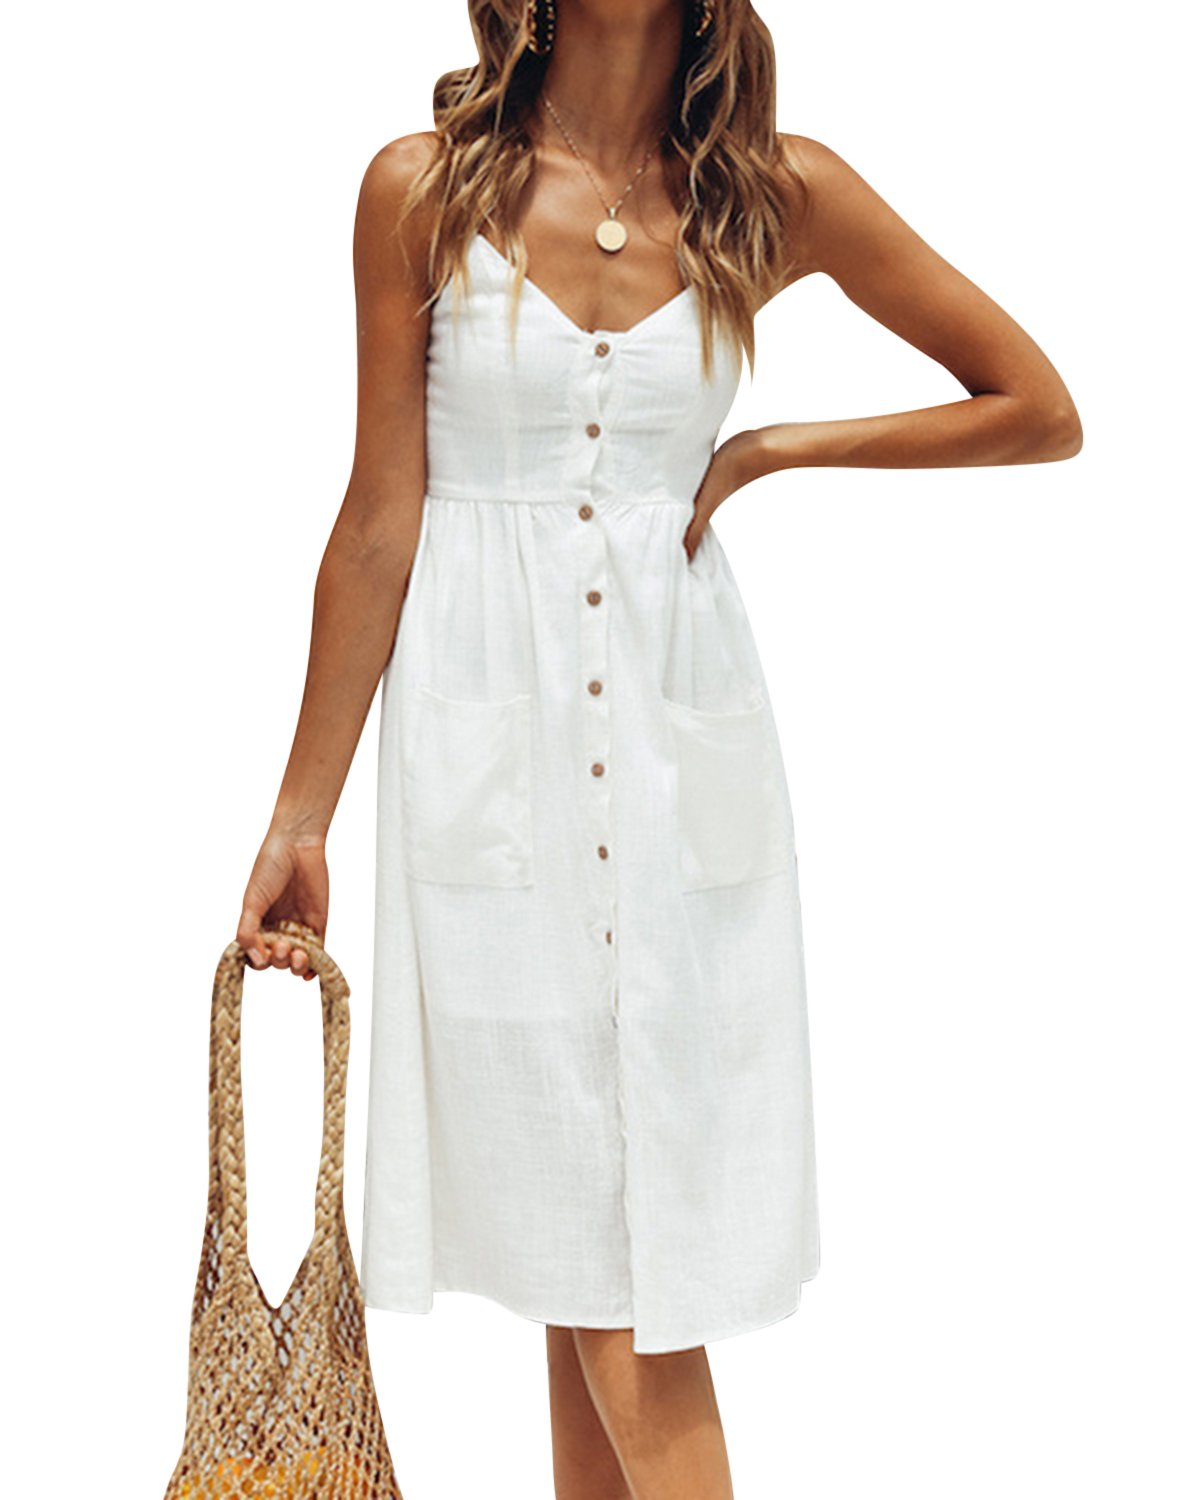 Jacansi Women Bohemian Sleeveless Backless Knee-Length Button up Midi Dress with Pocket White L by Jacansi (Image #1)